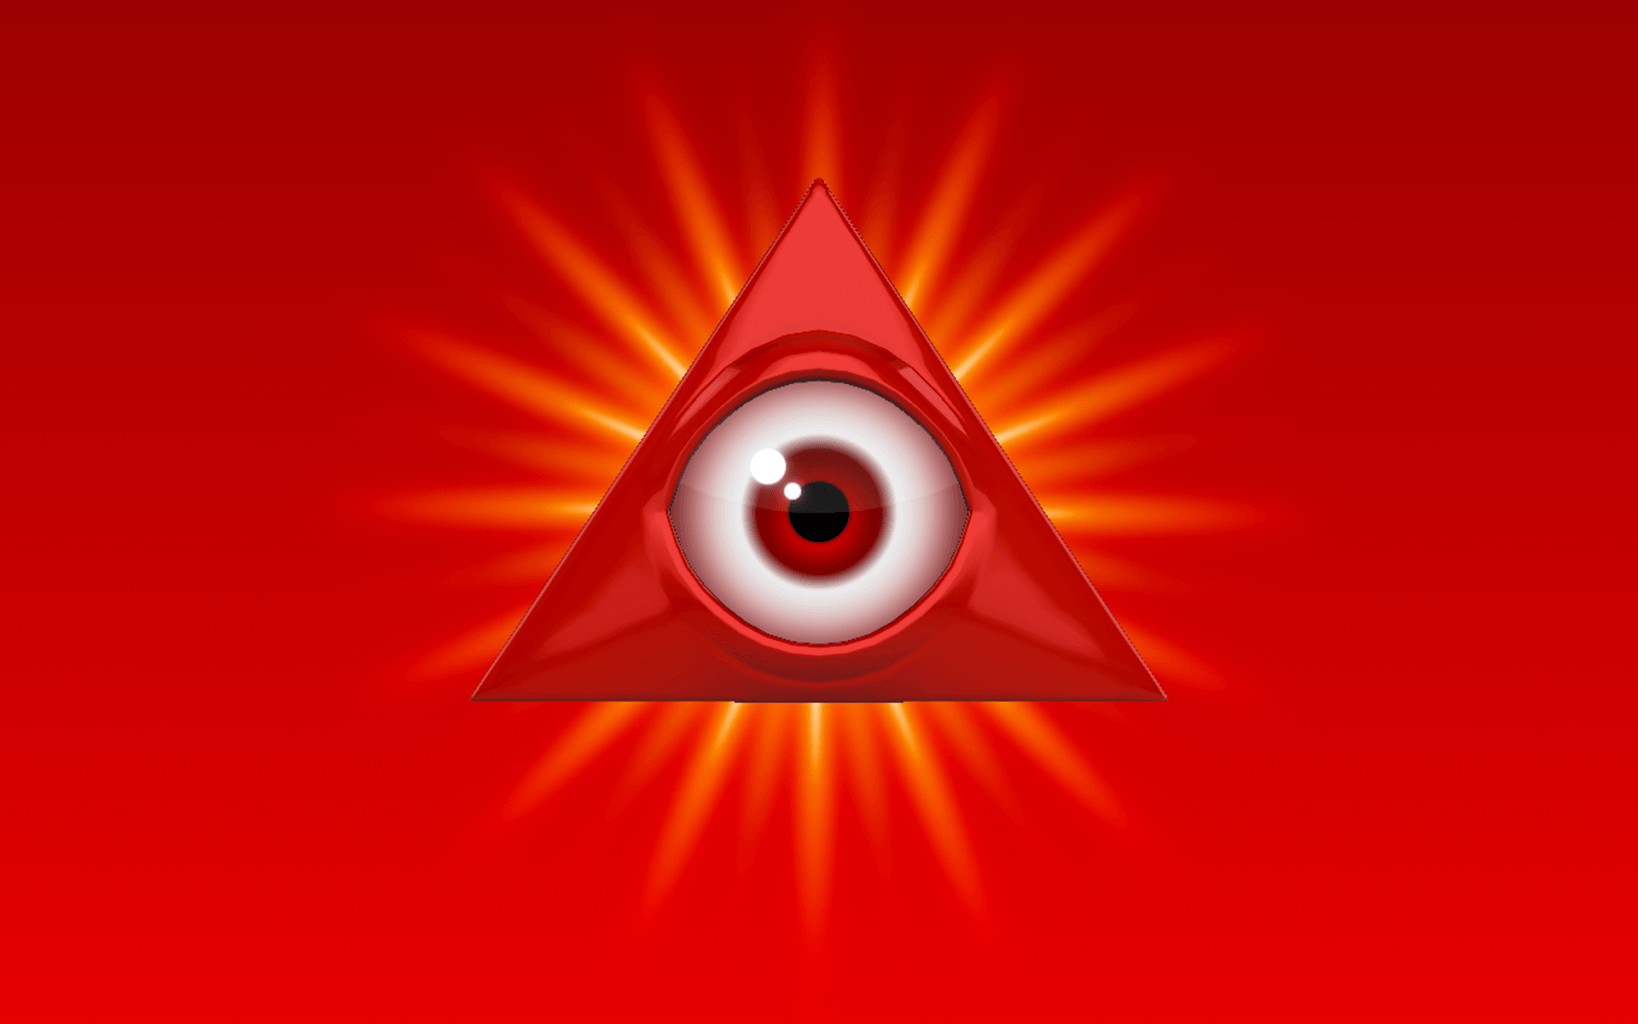 All Seeing Eye Wallpaper Iphone